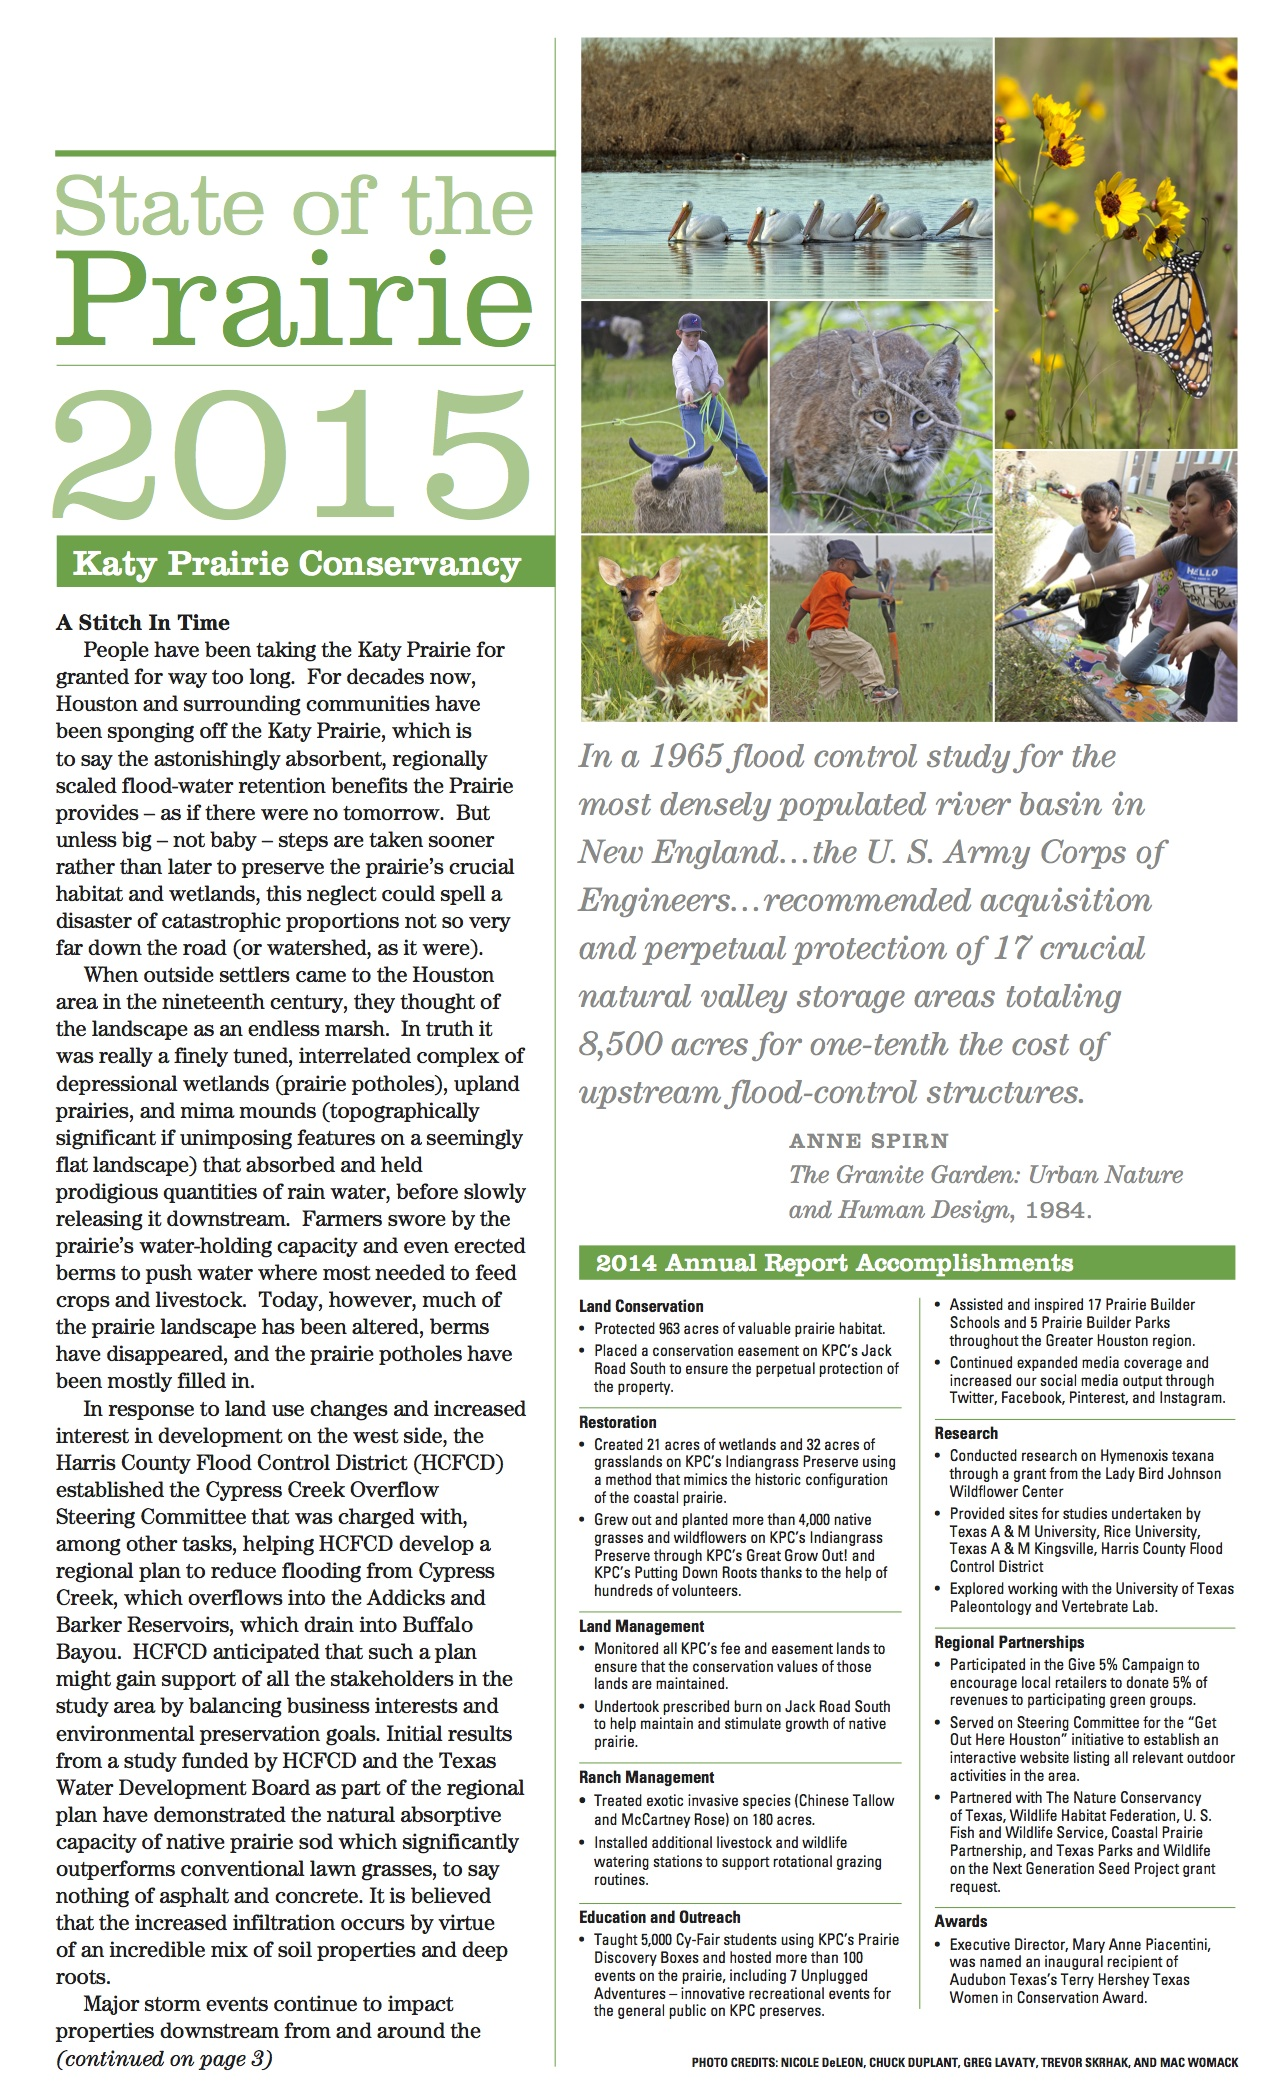 Click the Image to see the rest of the 2015 state of the prairie